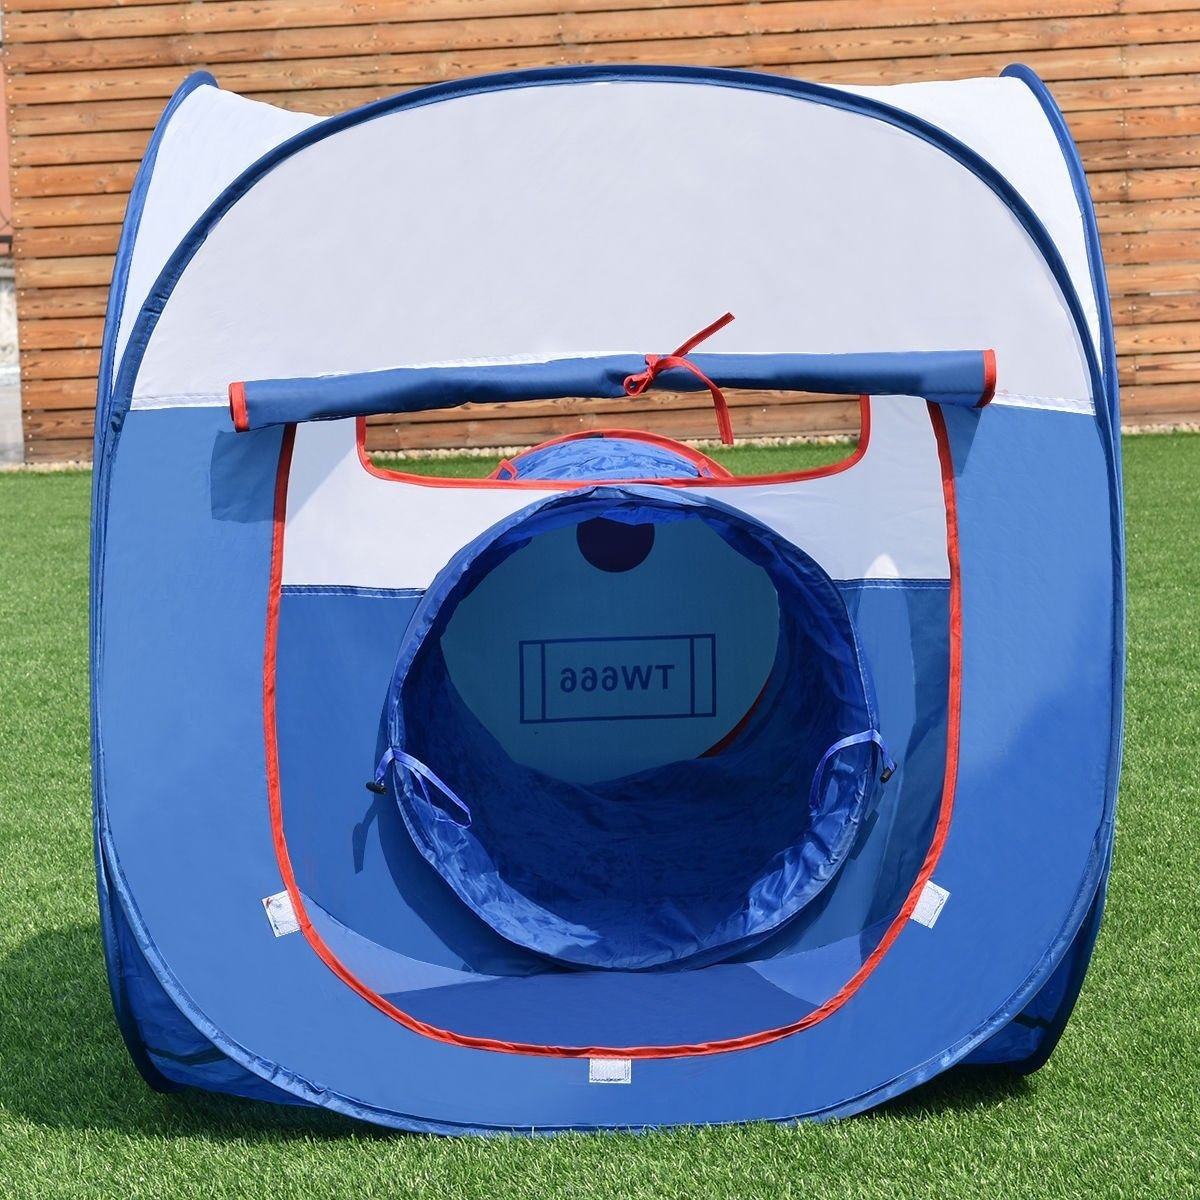 Amazing 2 In 1 Play Tent Tunnel House Outdoor Children Baby Kids Toys Gifts Game House by Pan_Had (Image #3)